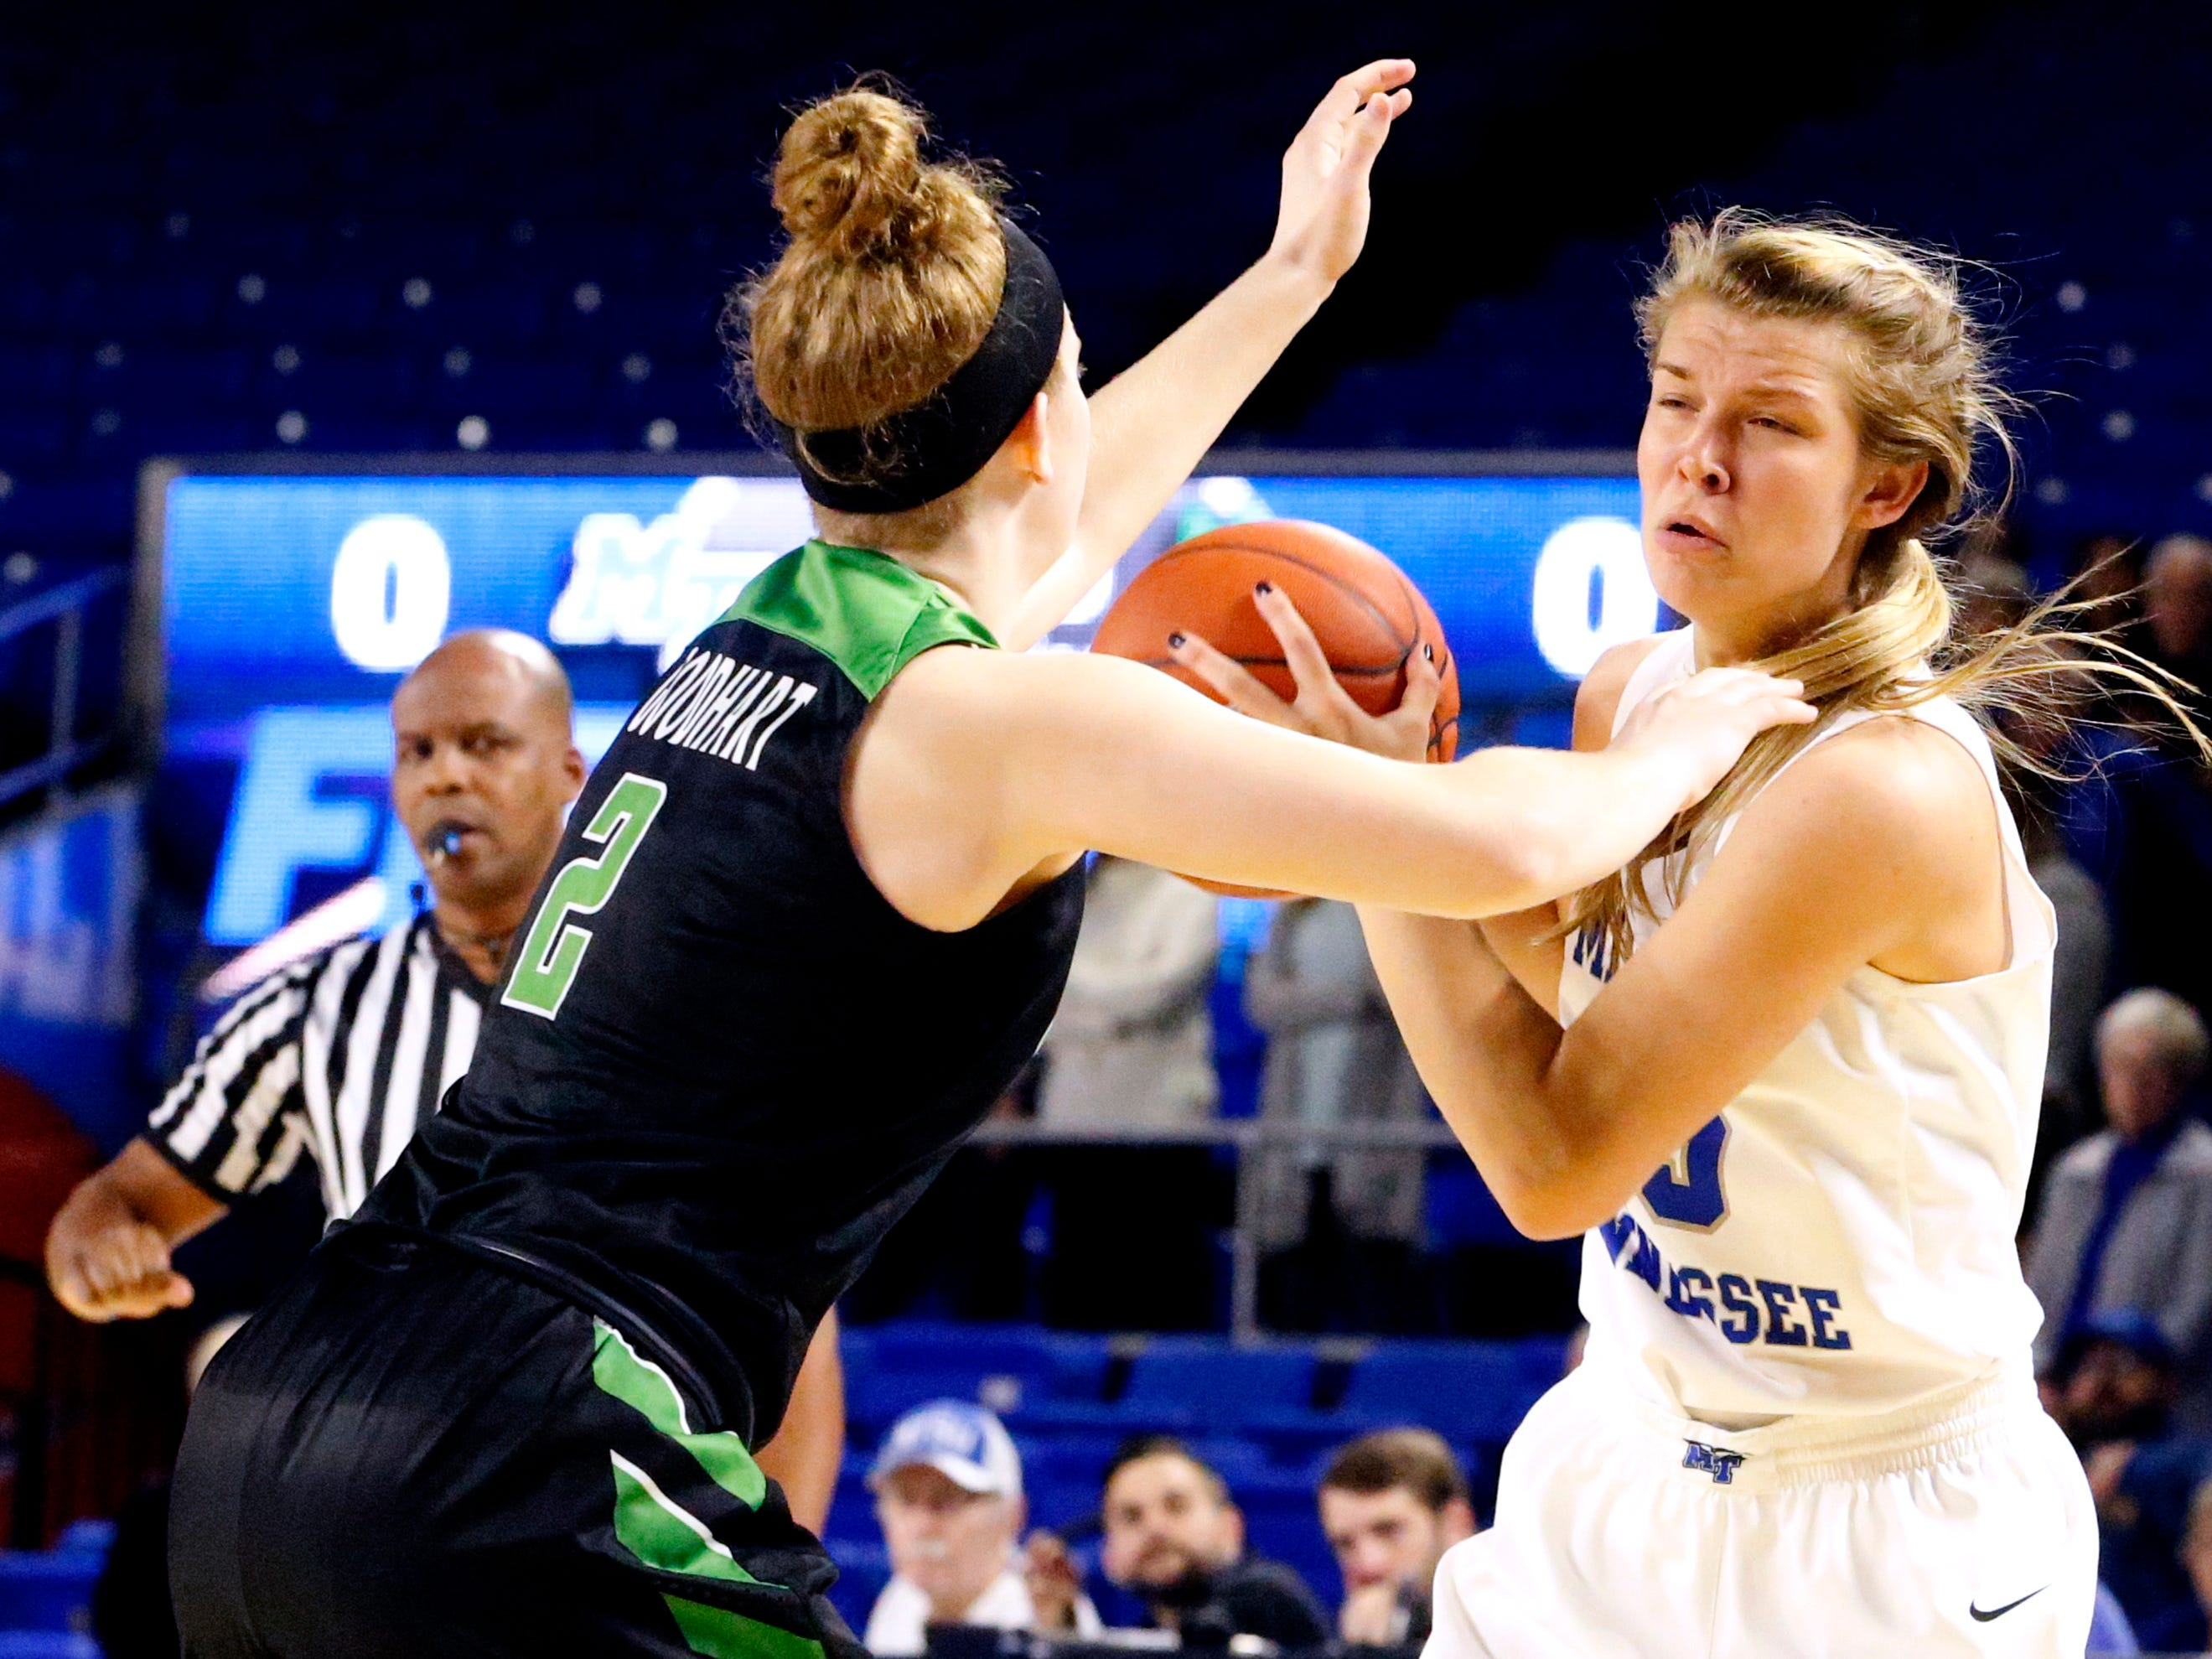 MTSU's guard Anna Jones (15) looks to pass the ball as North Texas' guard Grace Goodhart (2) guards her Saturday Jan. 26, 2019.